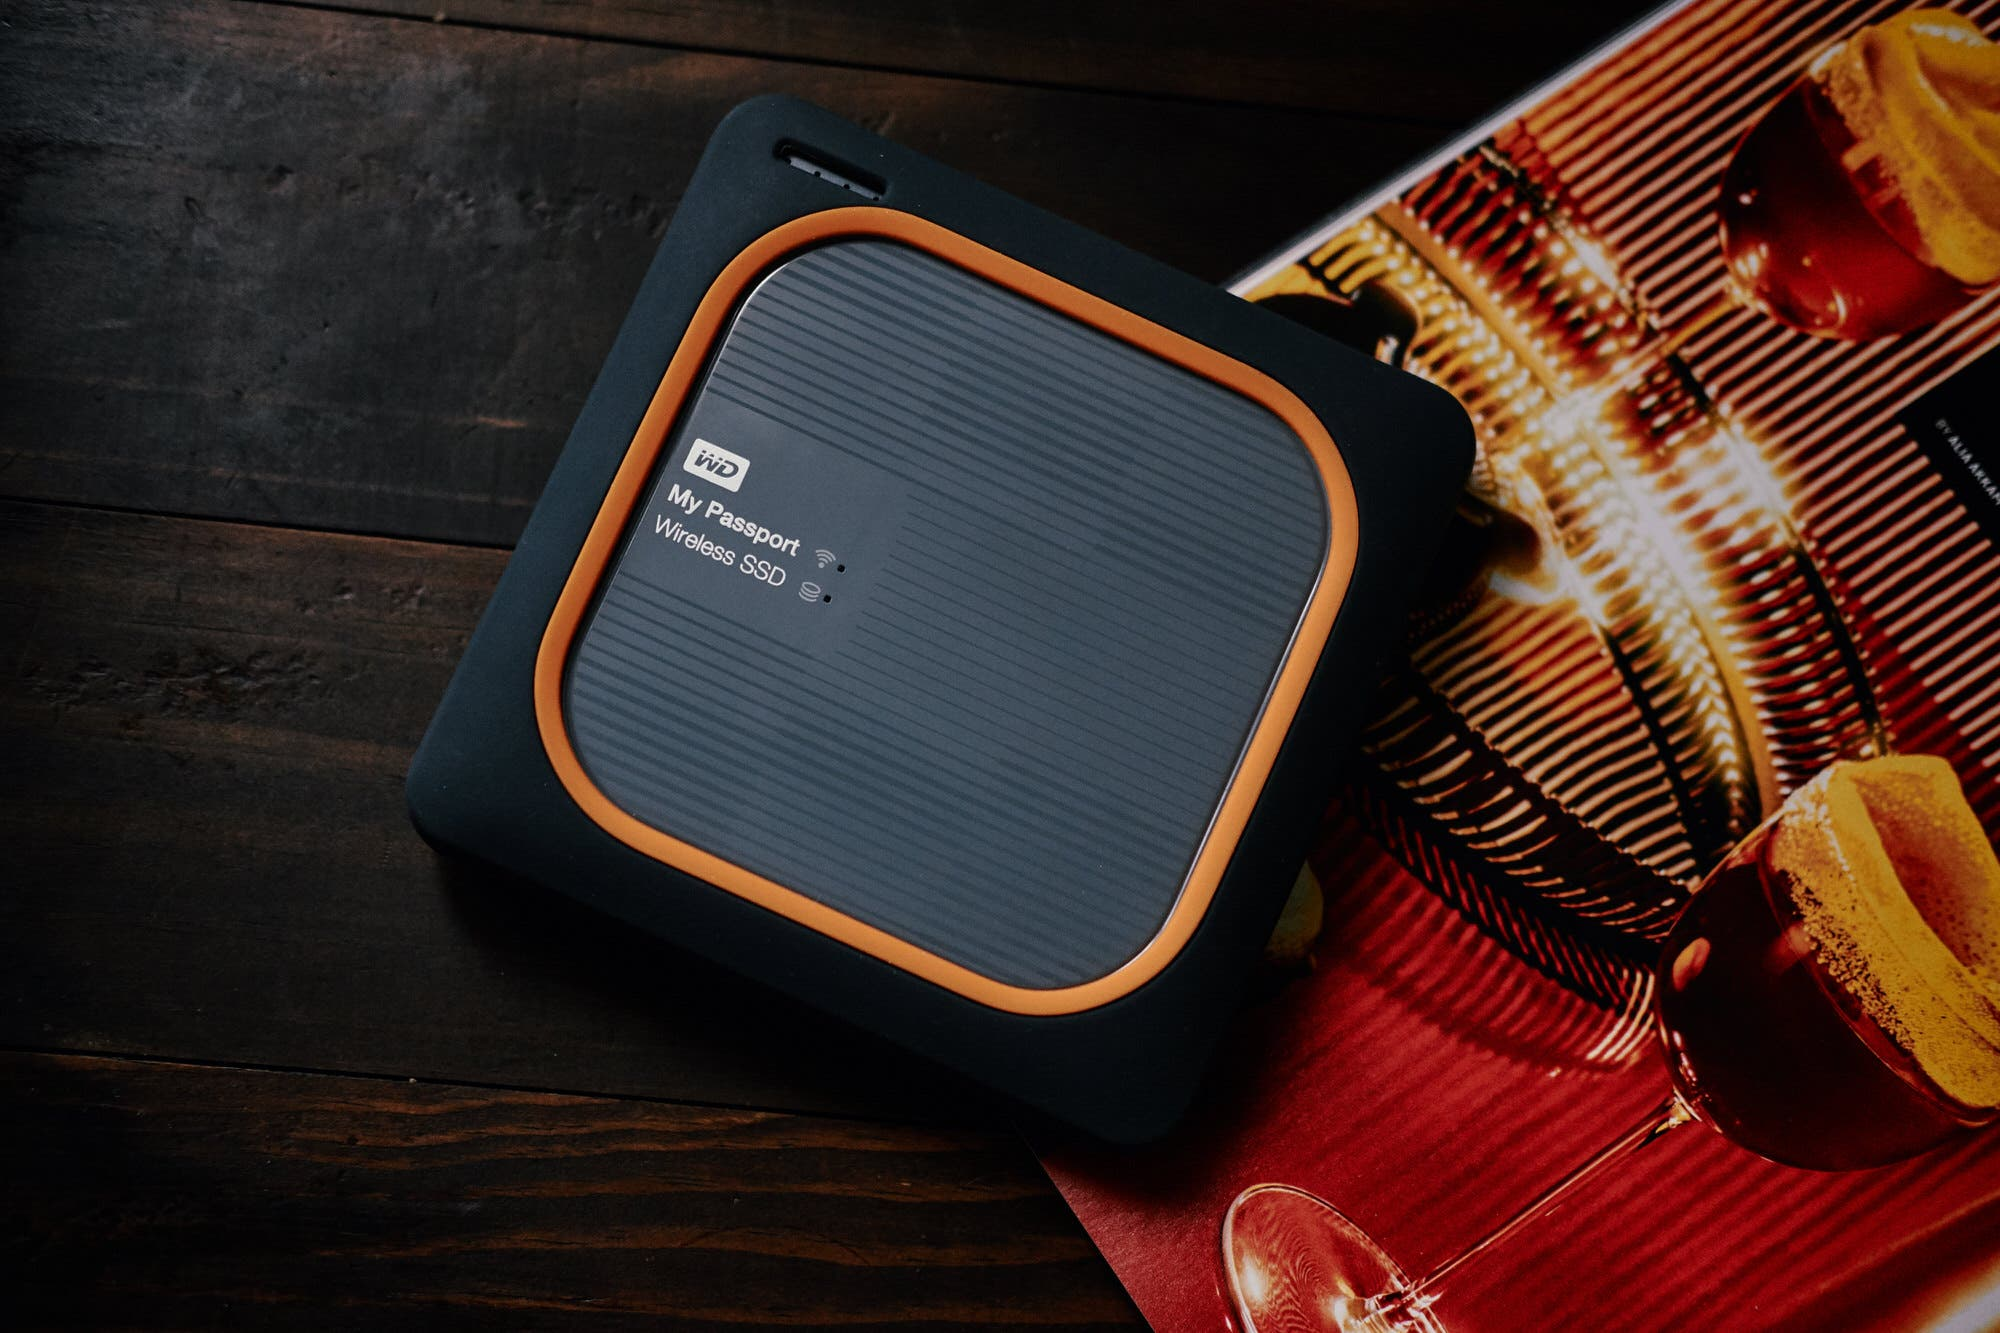 Review: Western Digital My Passport Wireless SSD (1TB)